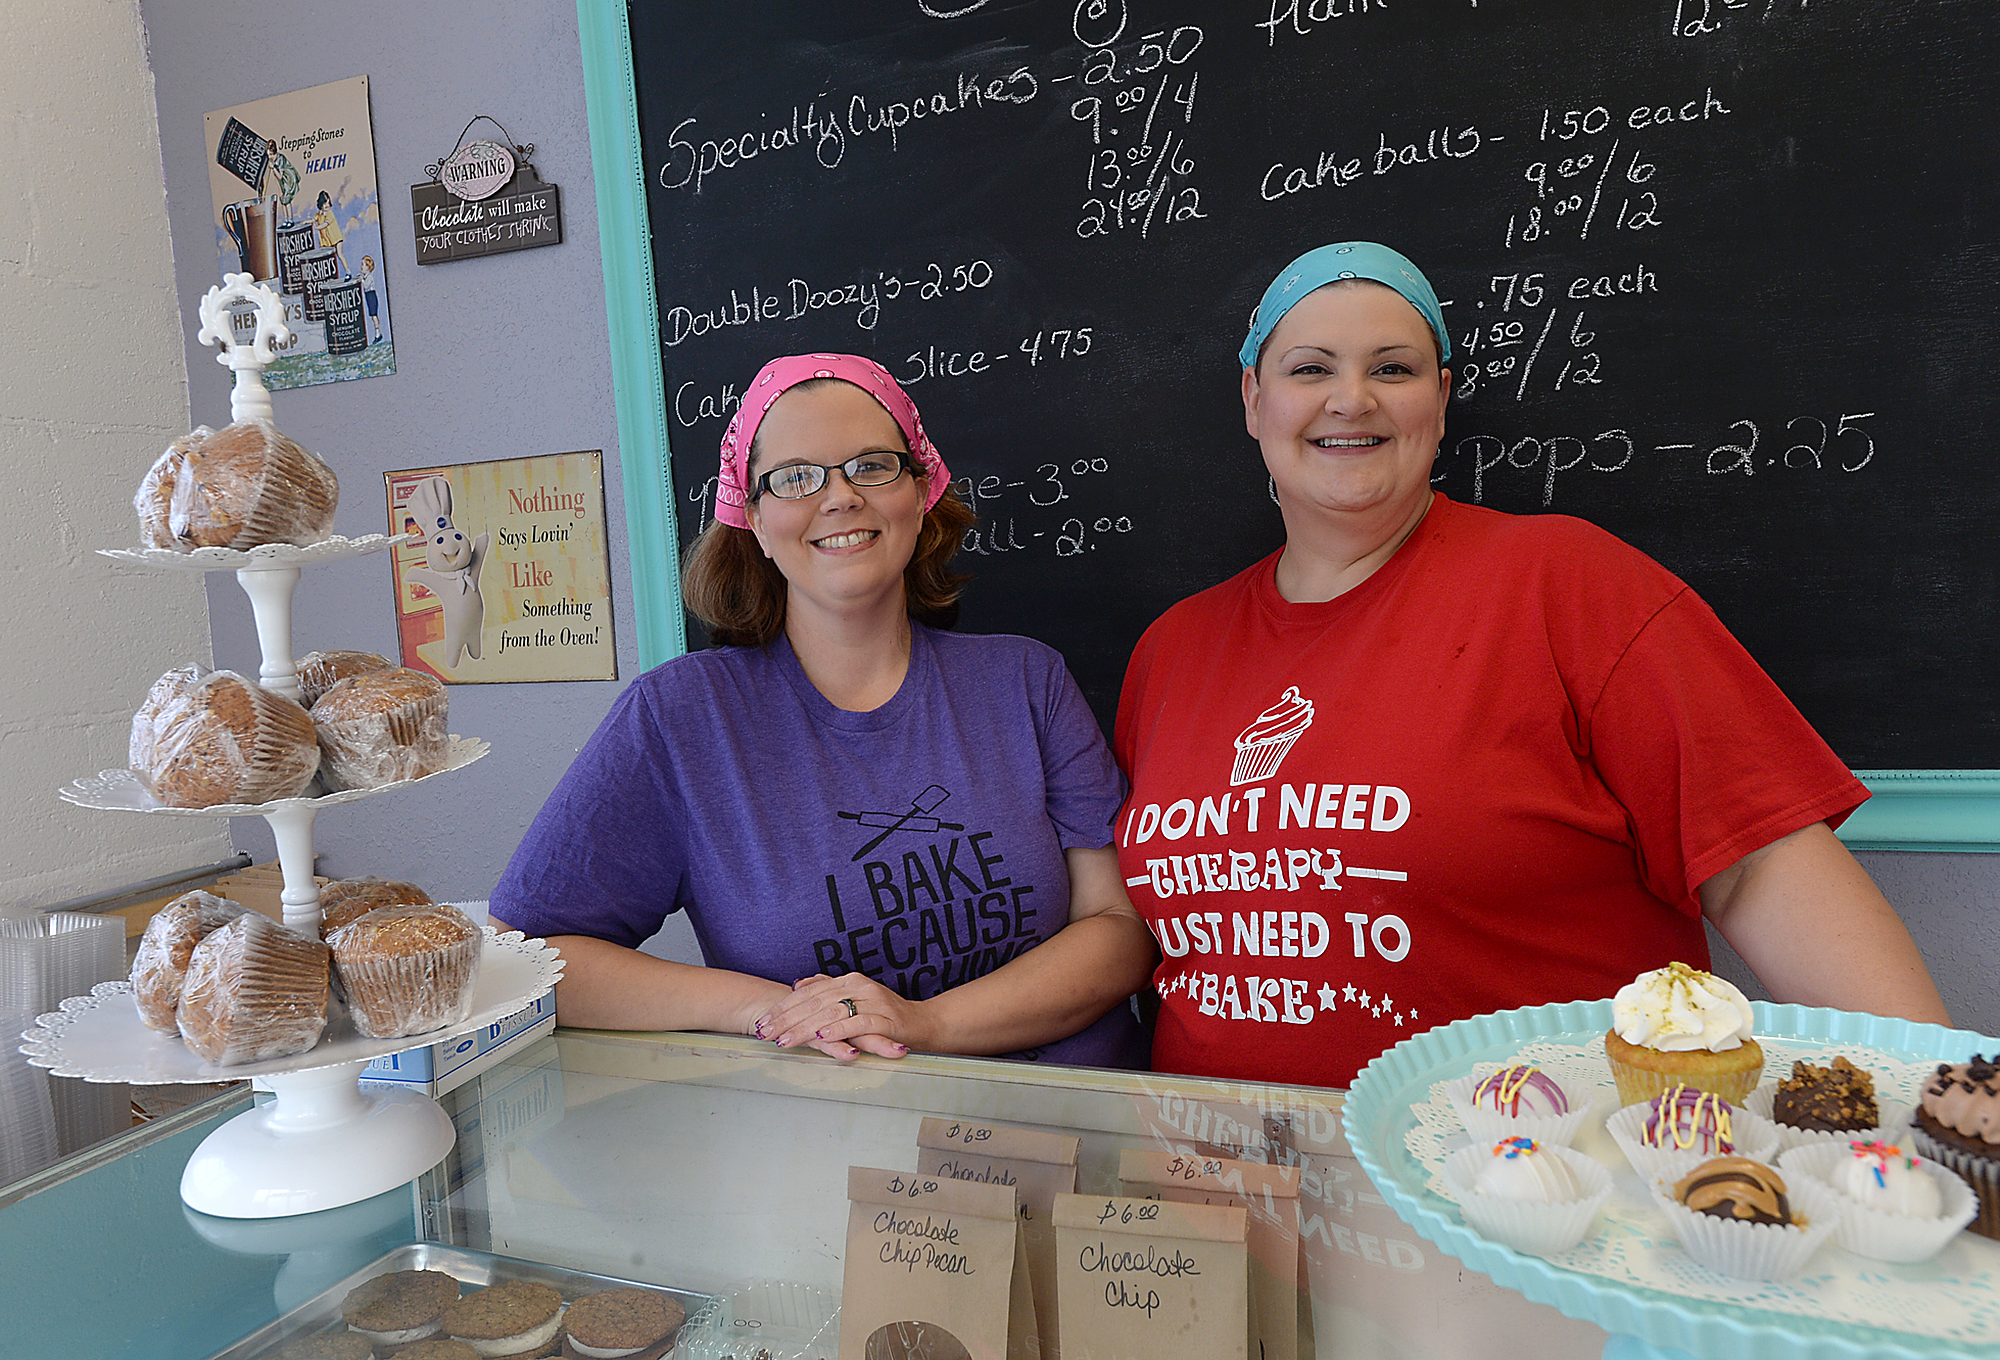 Sugar Momma Confections brings sweet treats to Groves